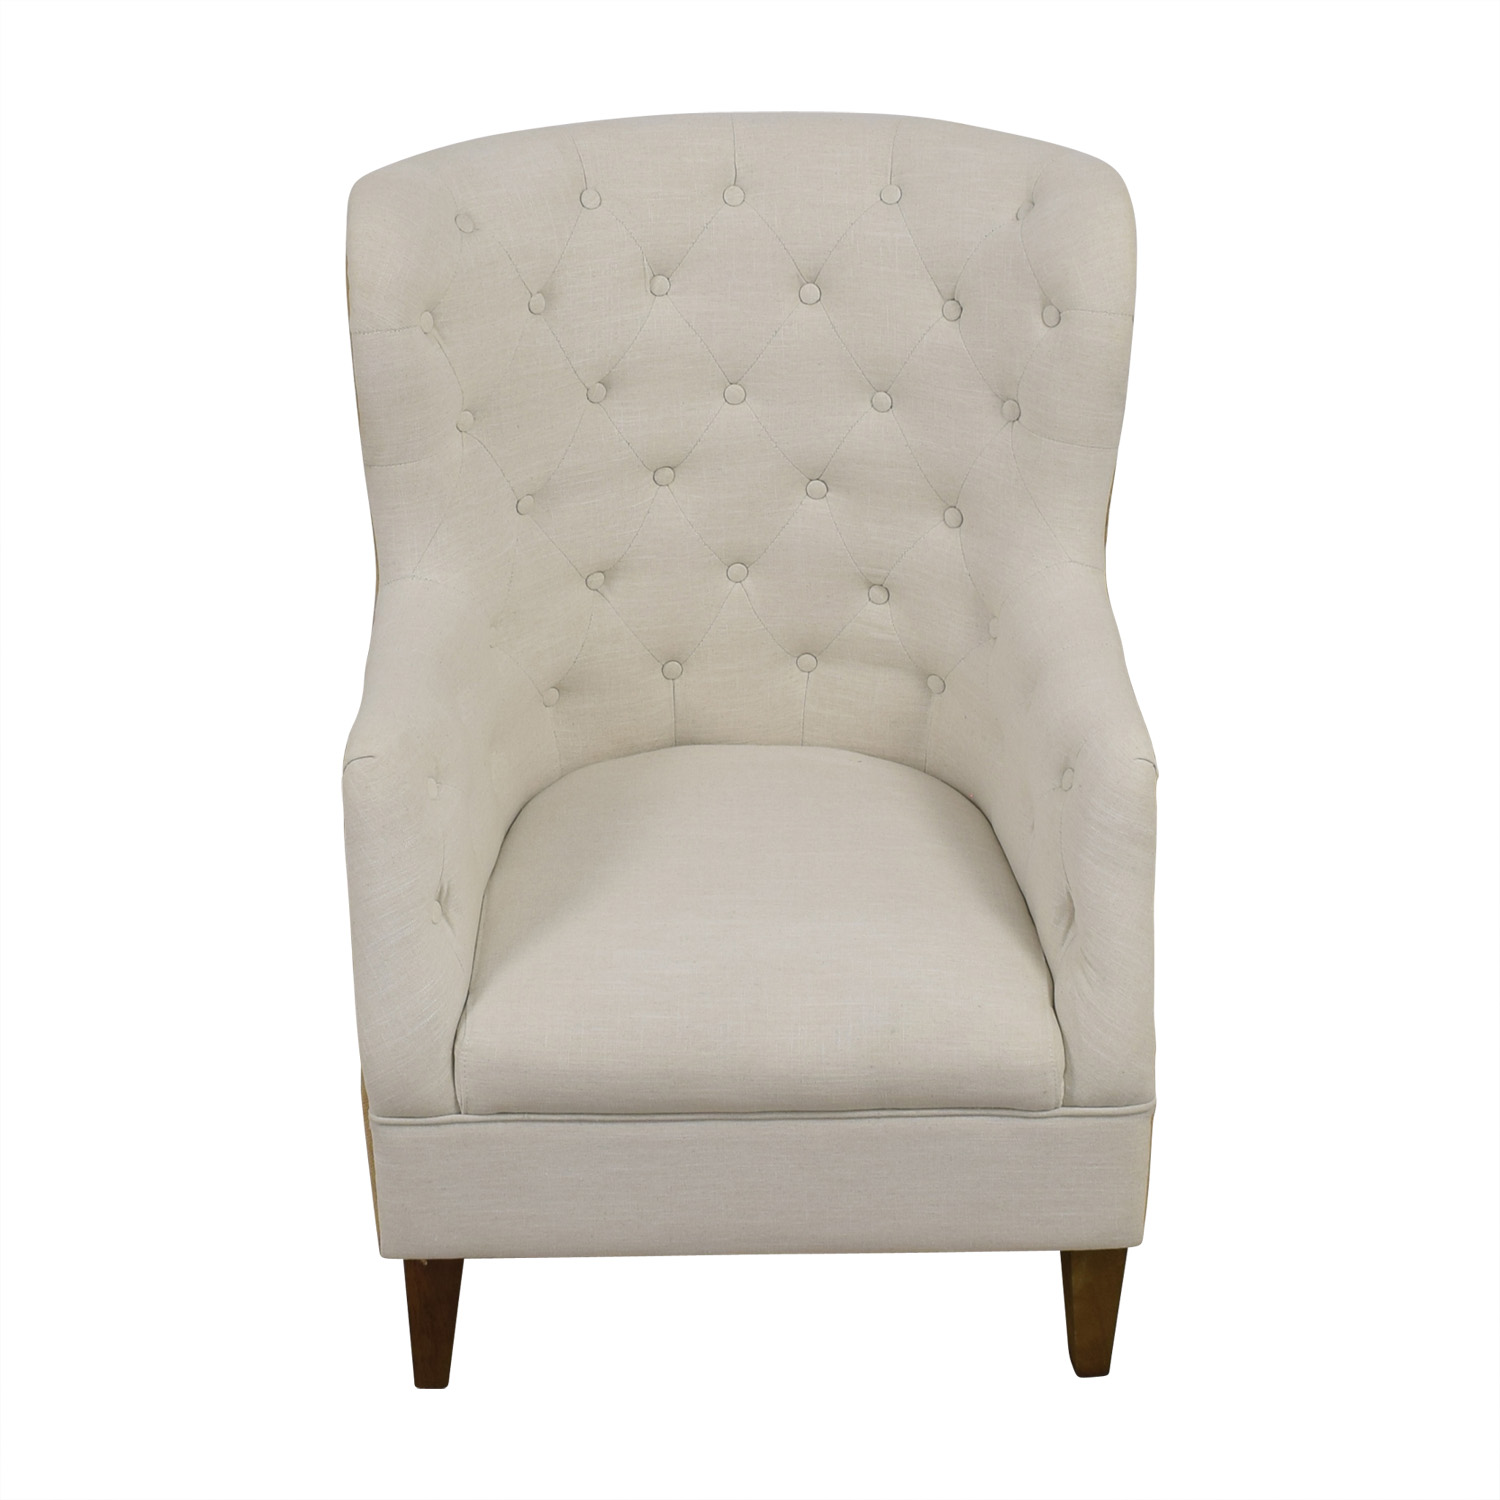 white tufted chair swivel jiji 76 off classic concepts and tan back wing accent discount